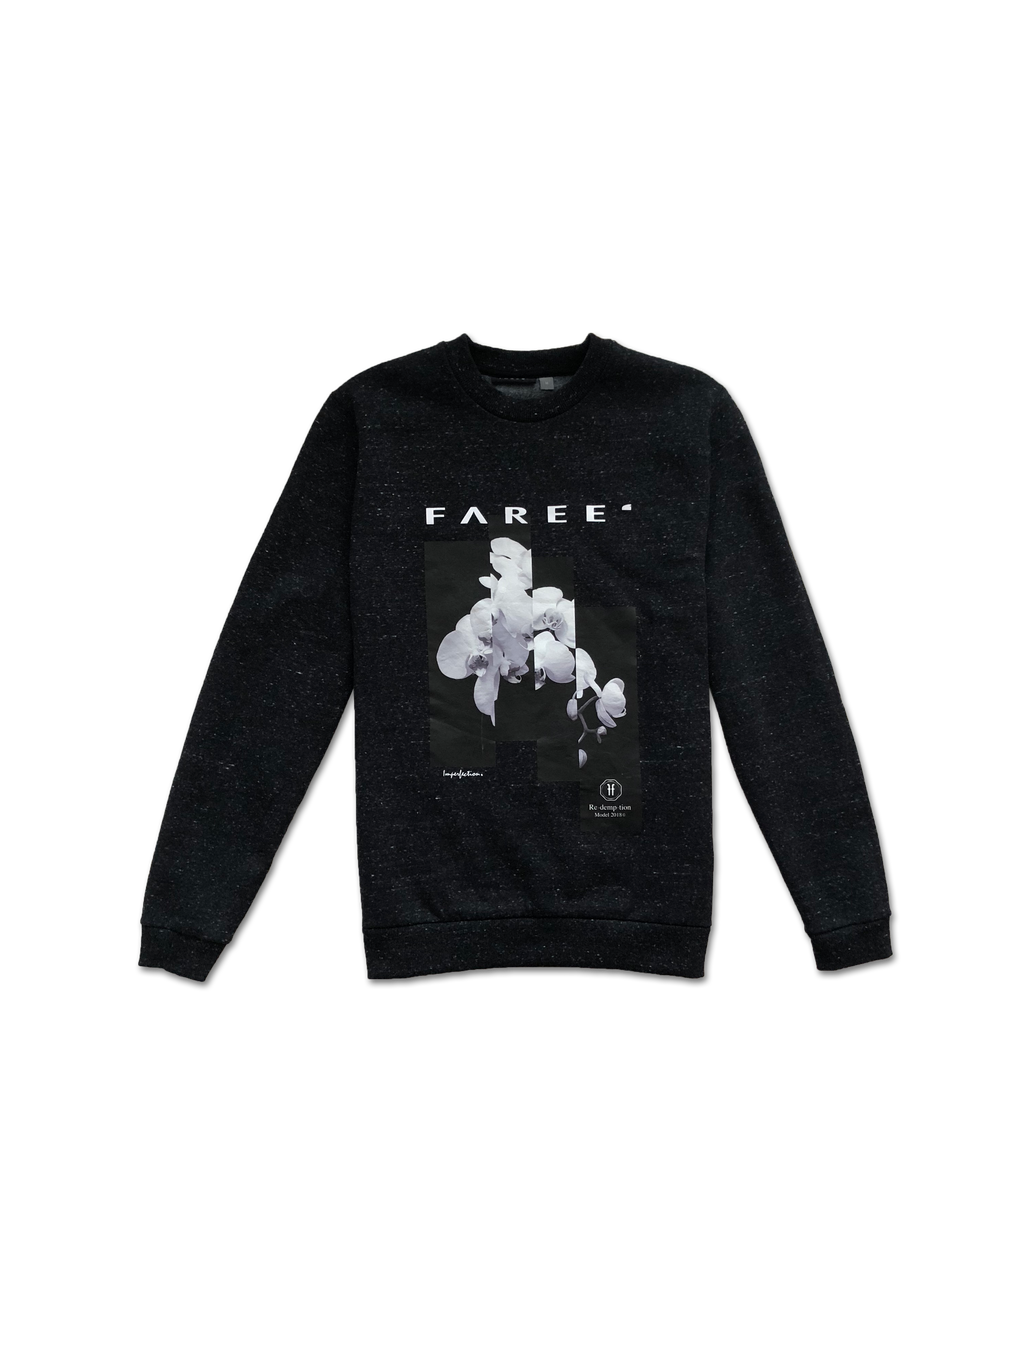 Homme Redemption Imperfection Sweatshirt in Marl Black